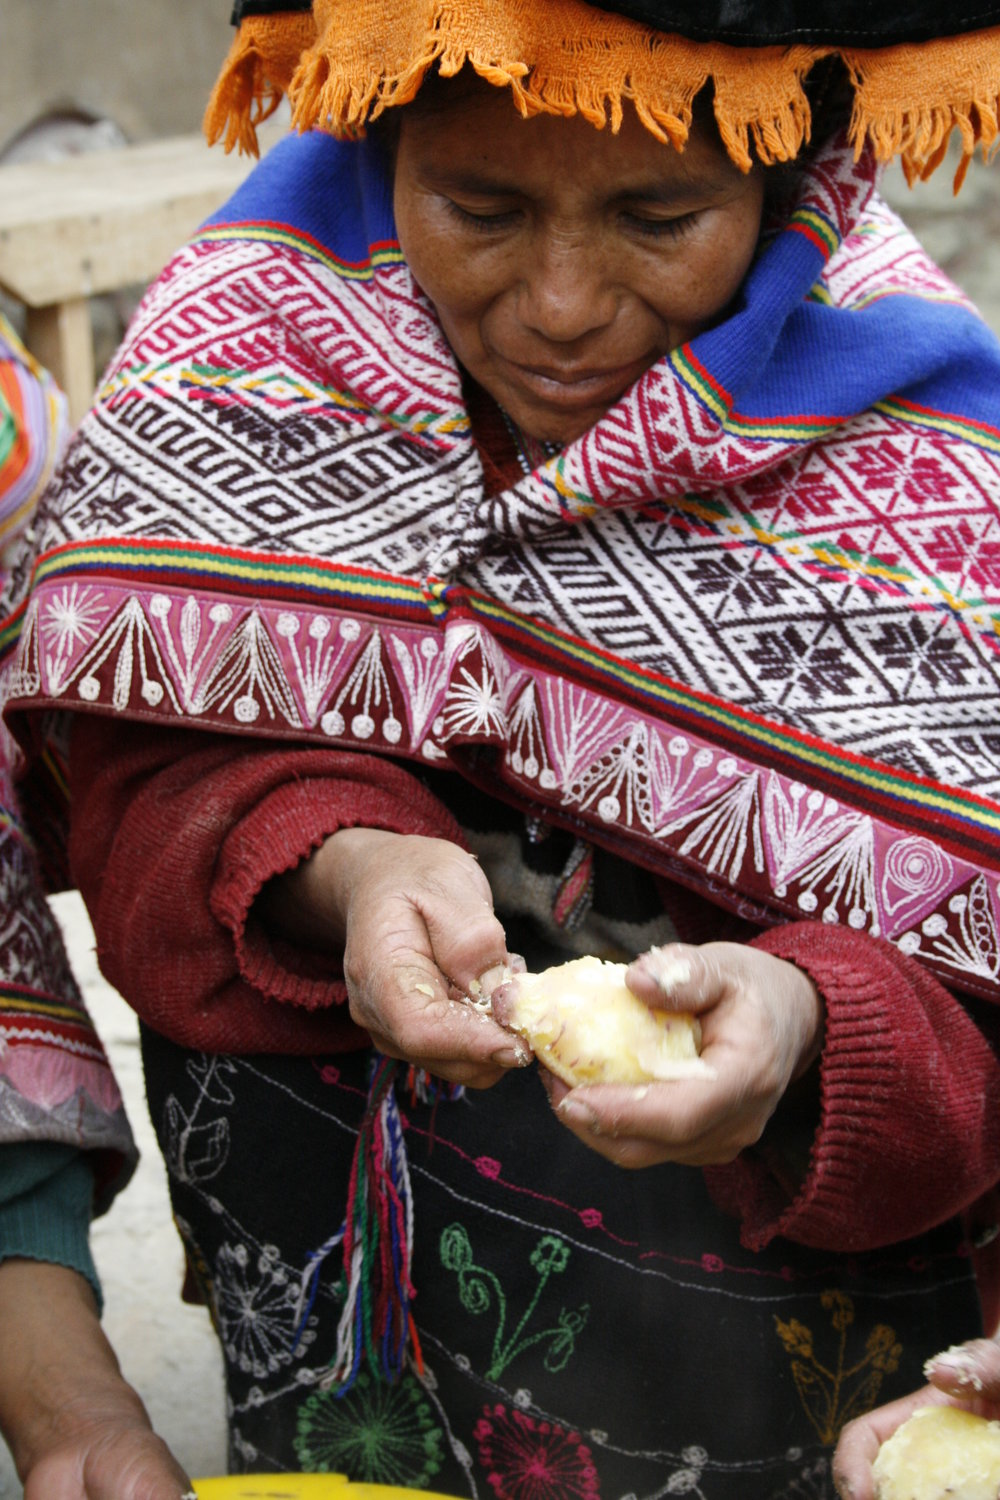 TRADITIONAL KNOWLEDGE AND FOOD IN PERU